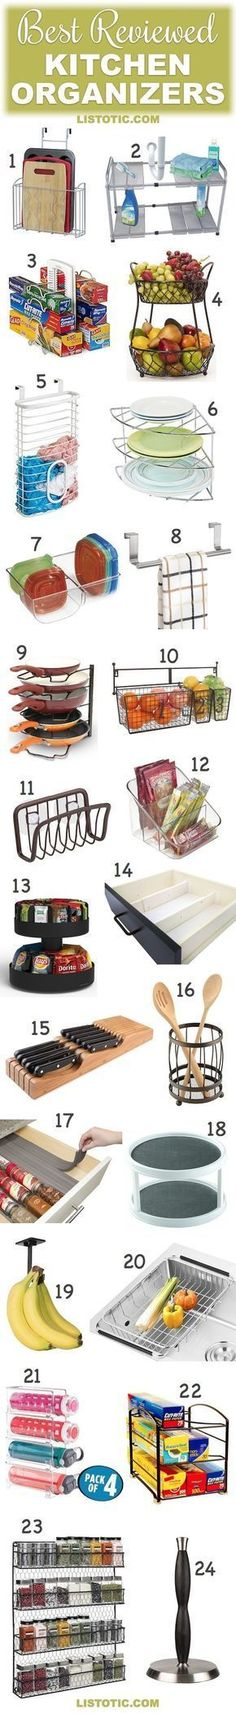 Kitchen Organization Ideas | The best reviewed kitchen organizers! These are great for the pantry, cabinets or countertops... especially for small kitchens.